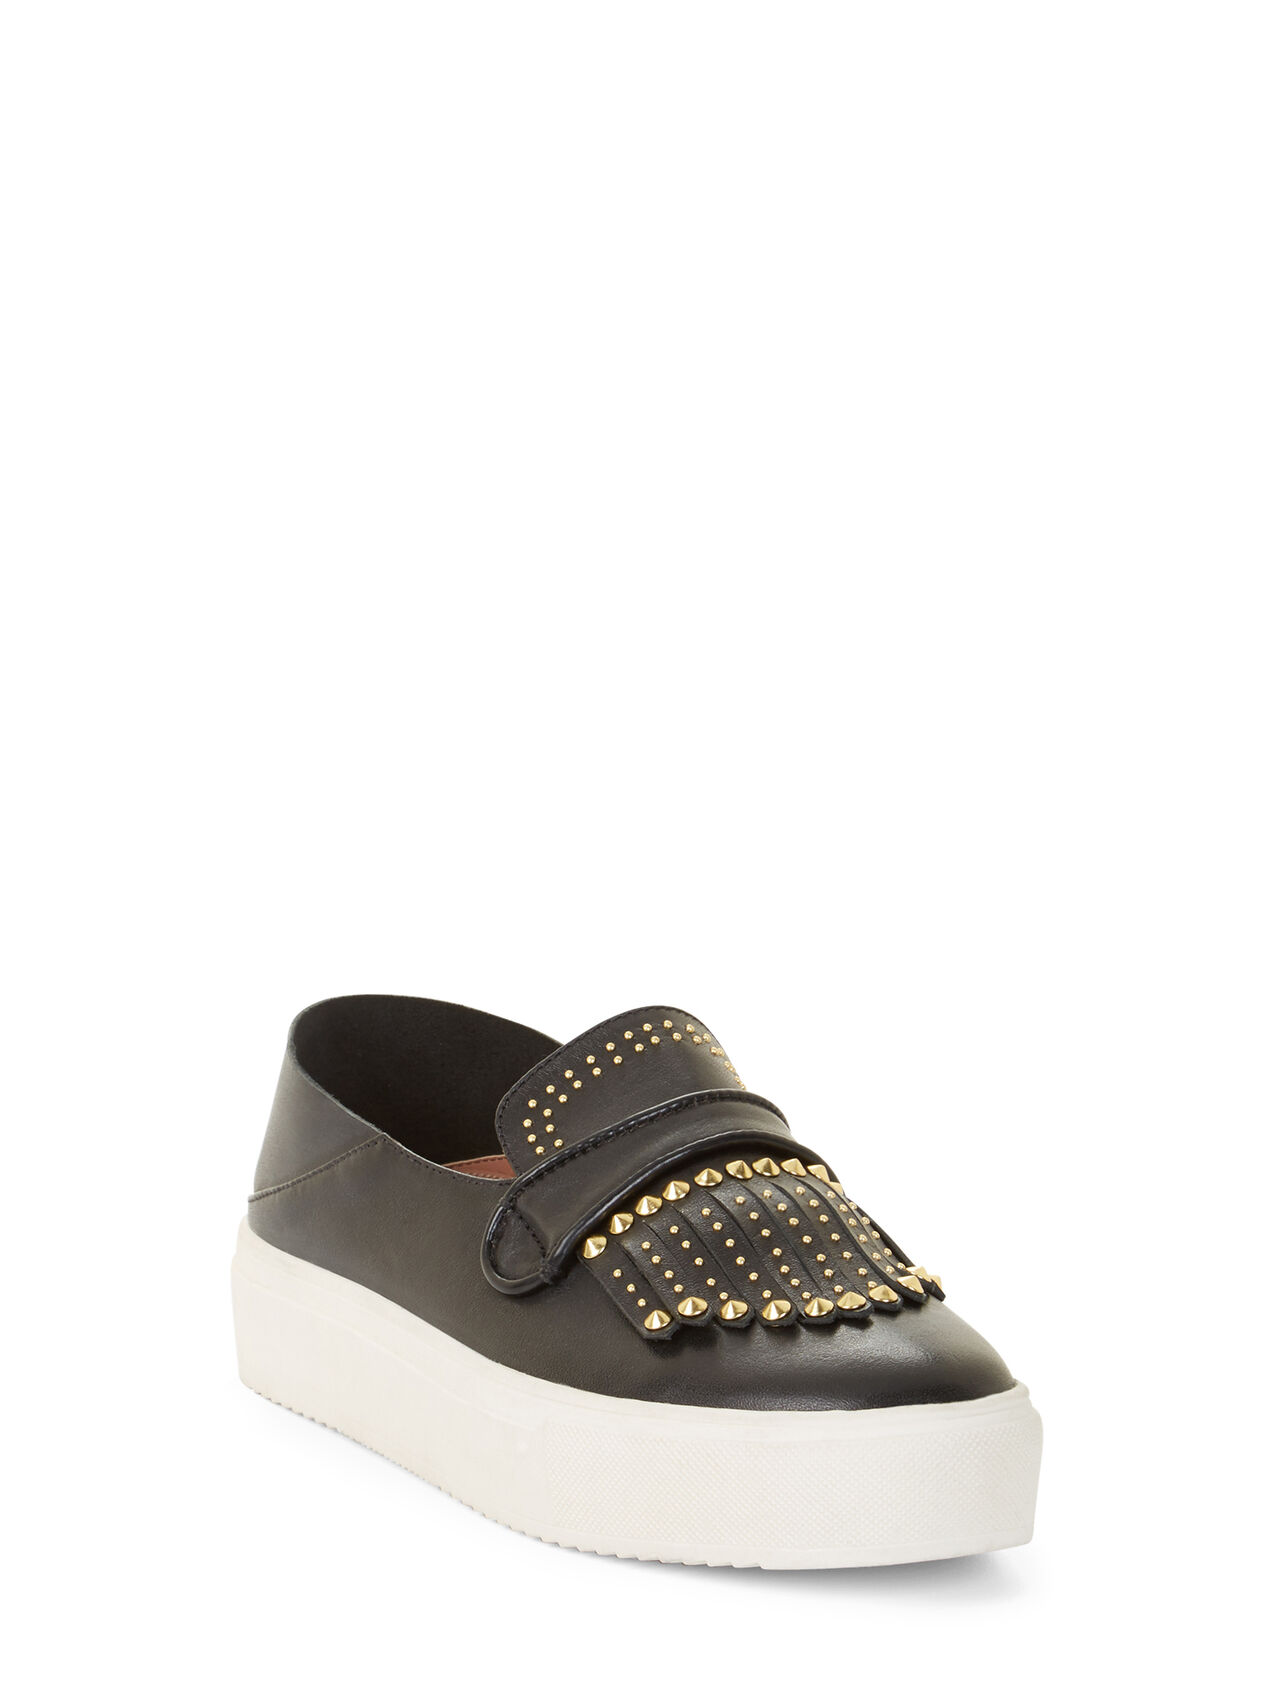 Dita Studded Leather Sneakers